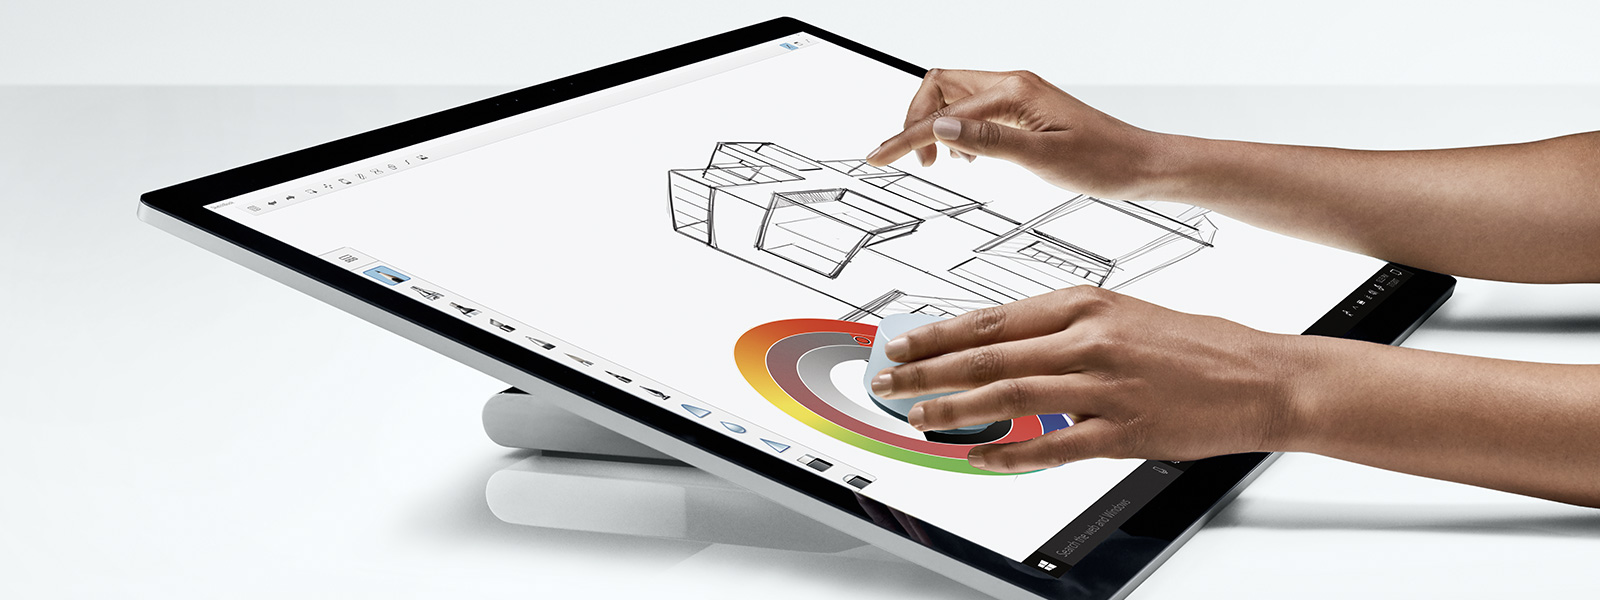 Persoon die aan de slag is met de Surface Studio met de Surface Dial